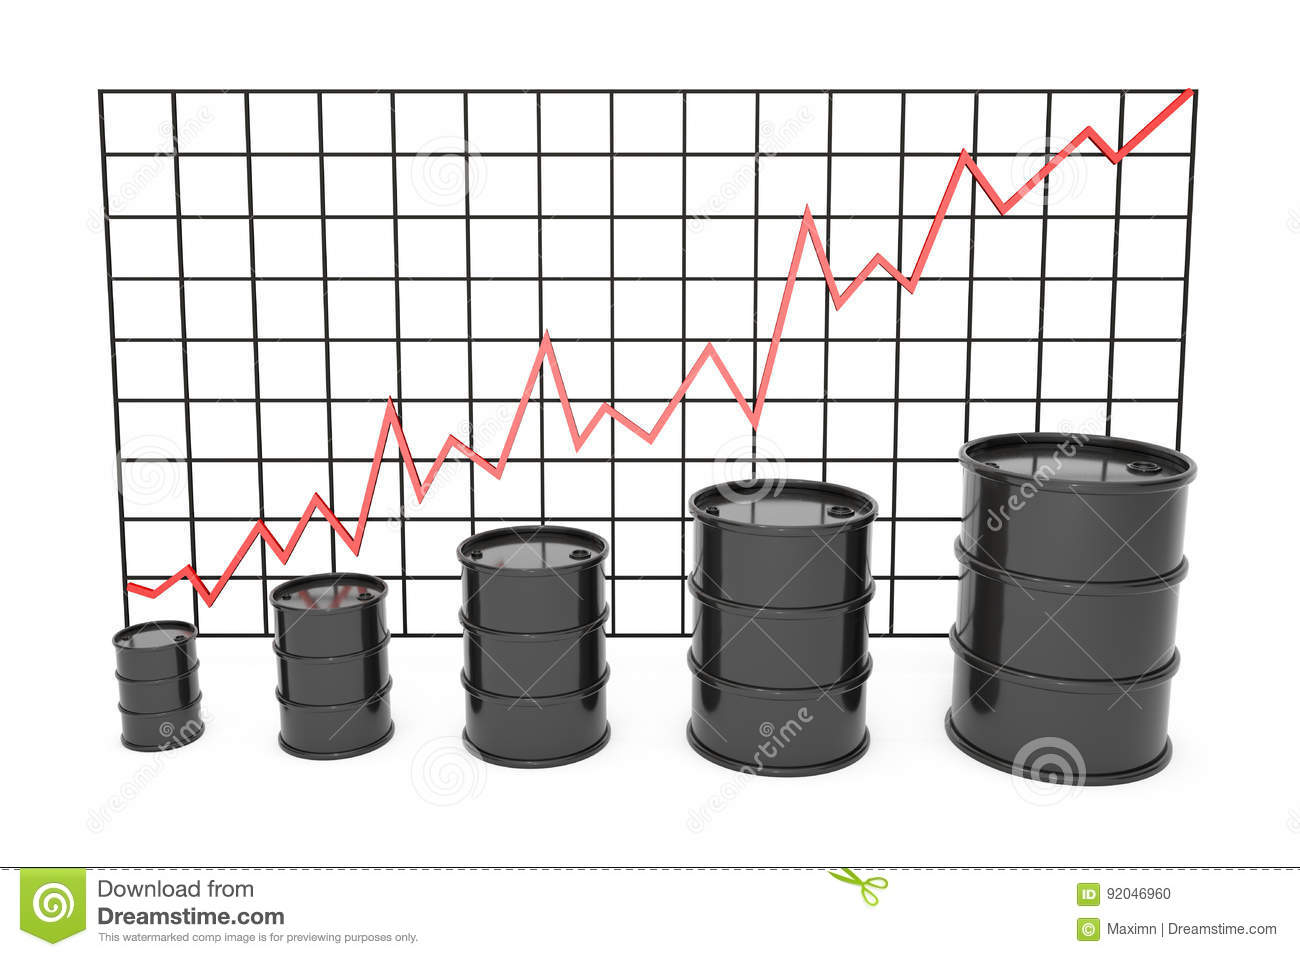 hight resolution of 3d illustration black barrels of oil graph chart stock market with red line arrow on